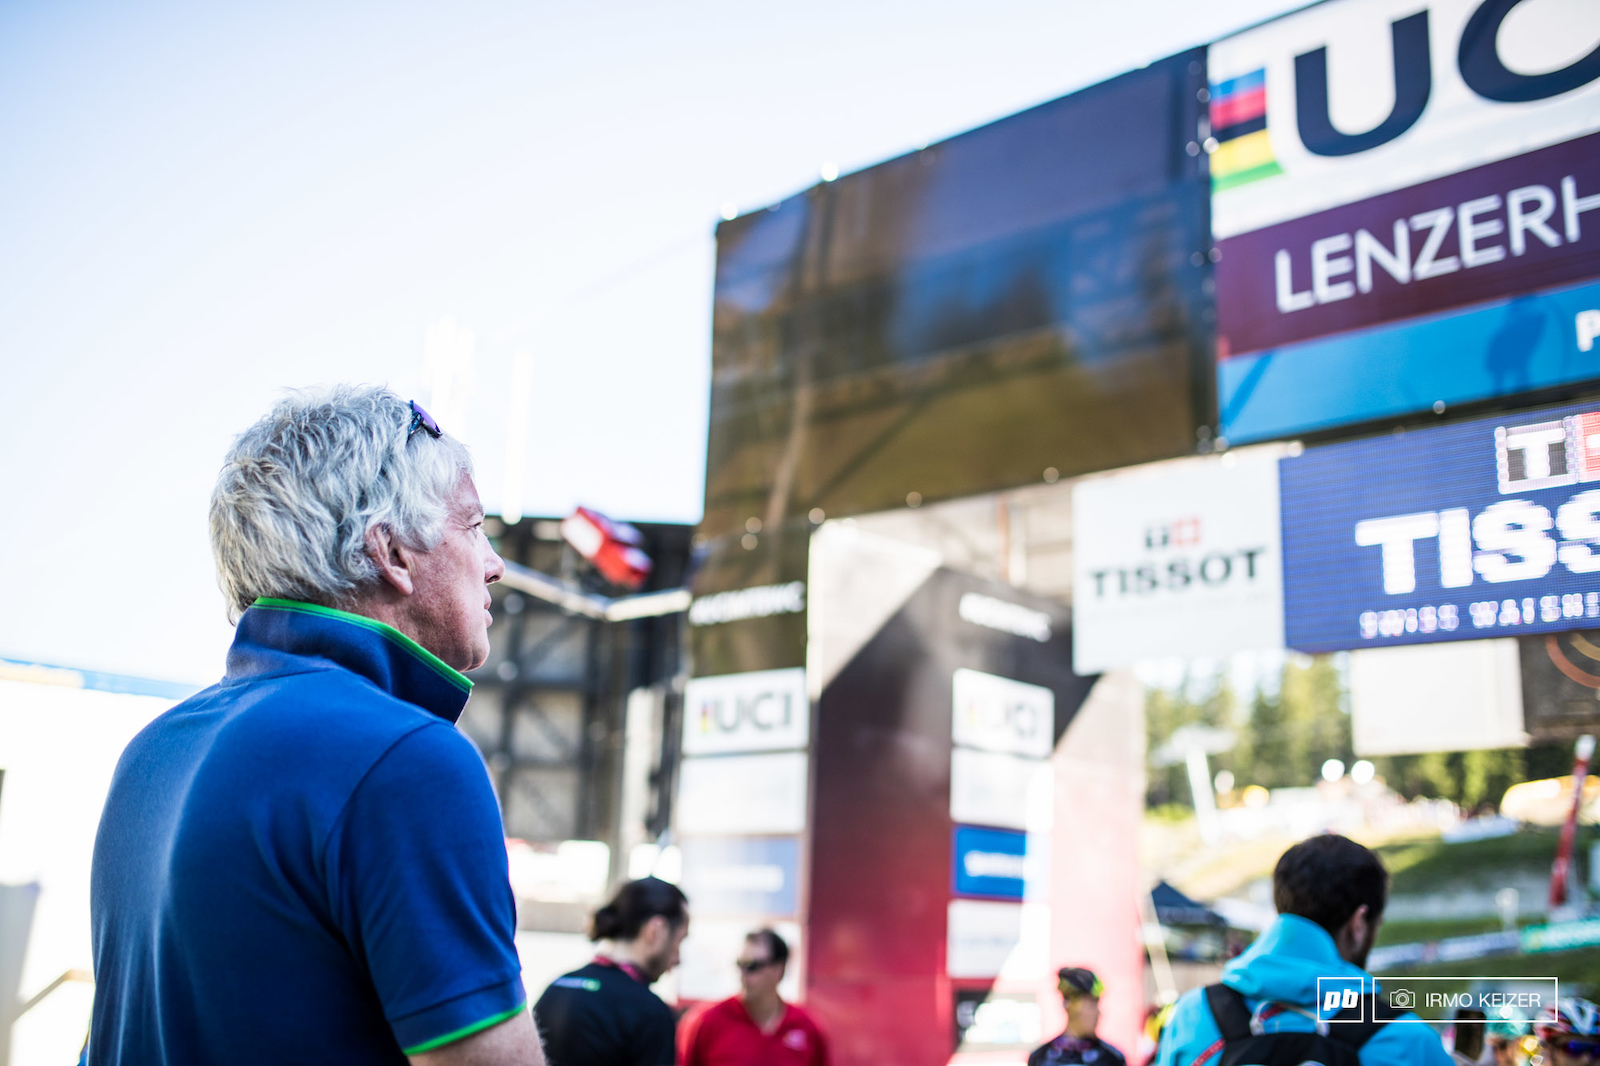 UCI s Simon Burney making sure the show runs smooth in Lenzerheide. The men s U23 field s start is moments away.